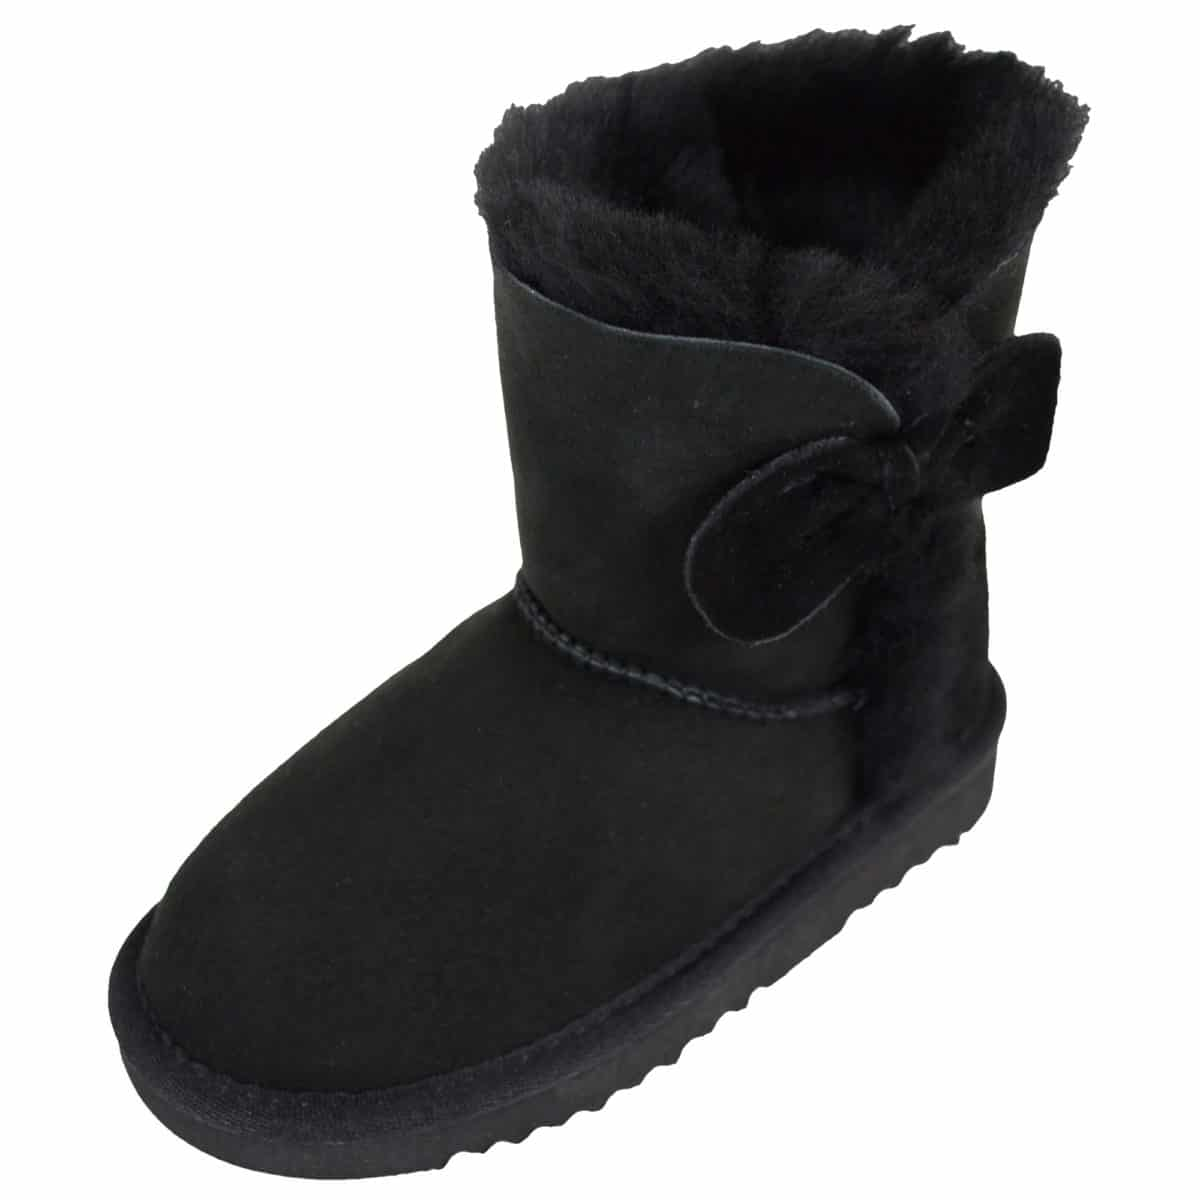 Snugrugs Childs Sheepskin Boots Black